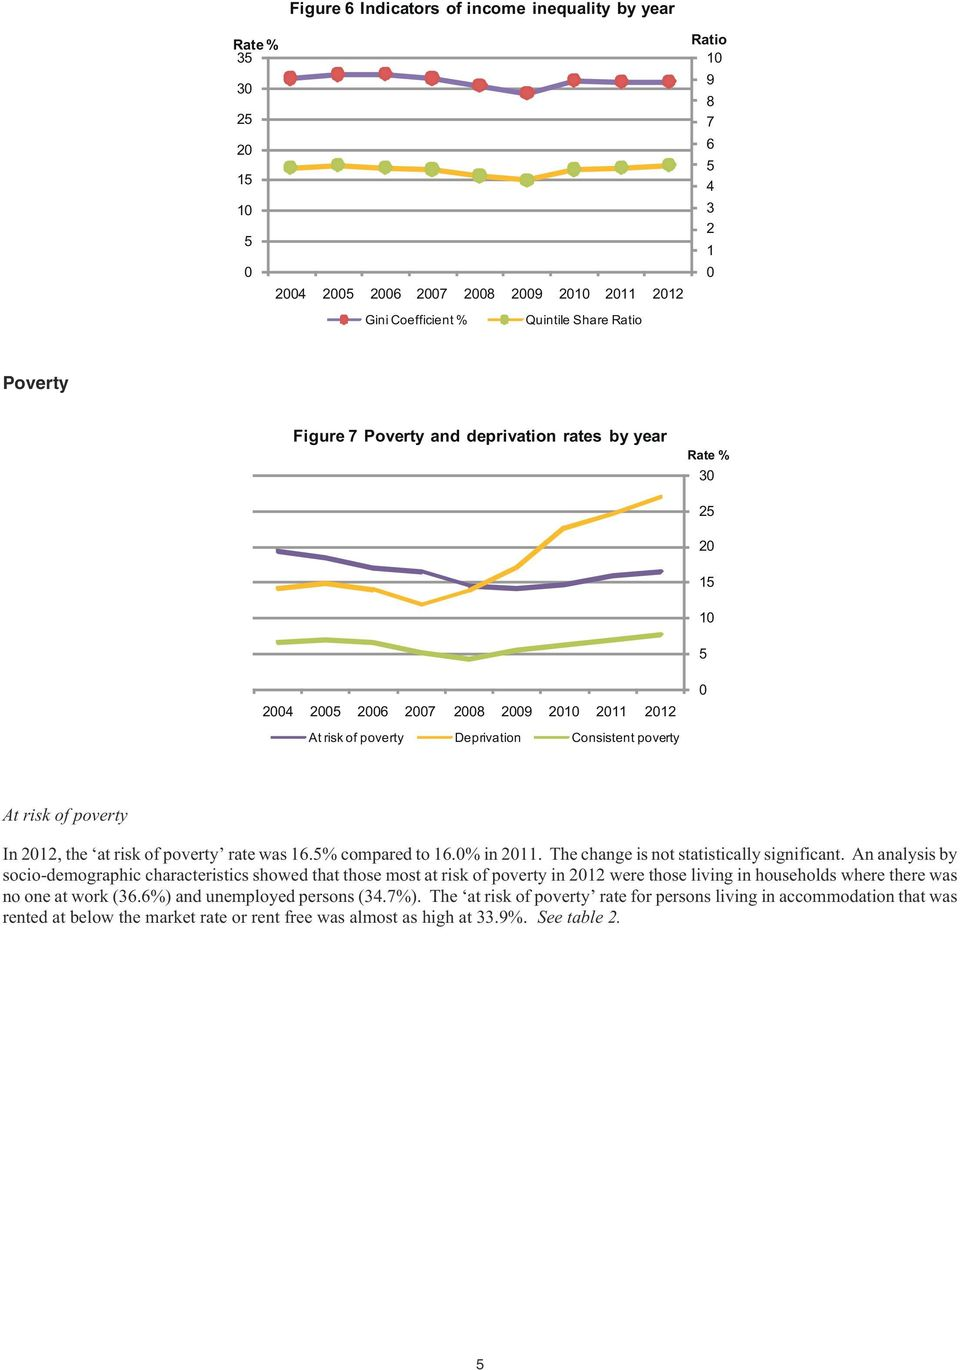 at risk of poverty rate was 16.5% compared to 16.0% in 2011. The change is not statistically significant.